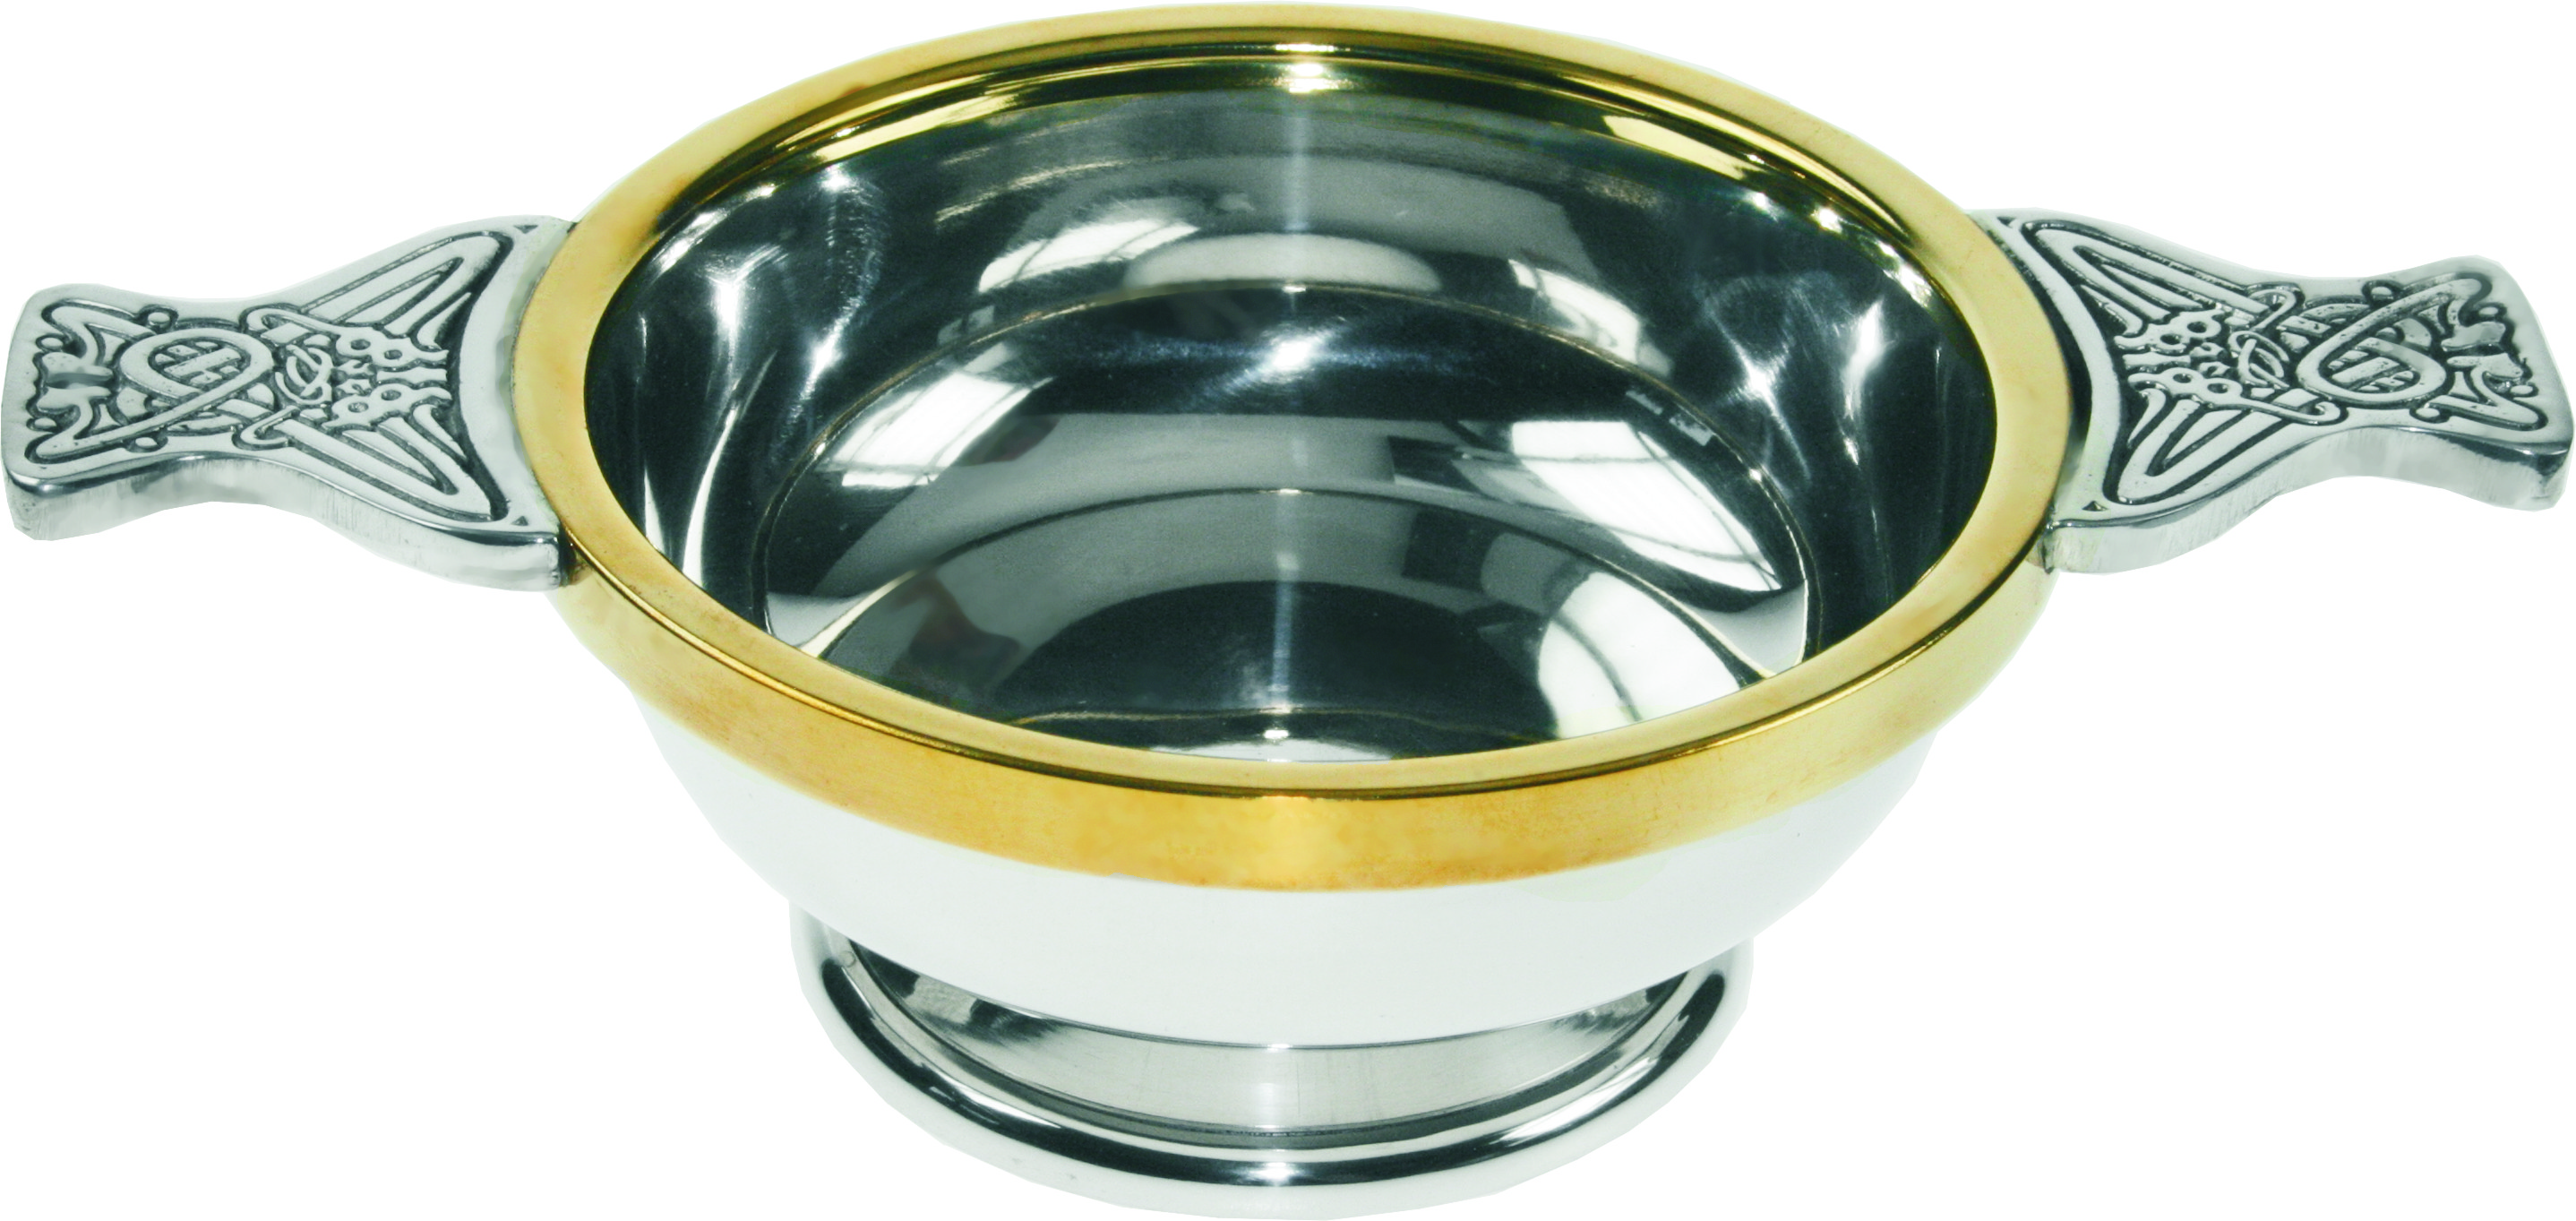 "Pewter Quaich Bowl with Brass Rim and Celtic Patterned Handle 11.5cm (4.5"")"